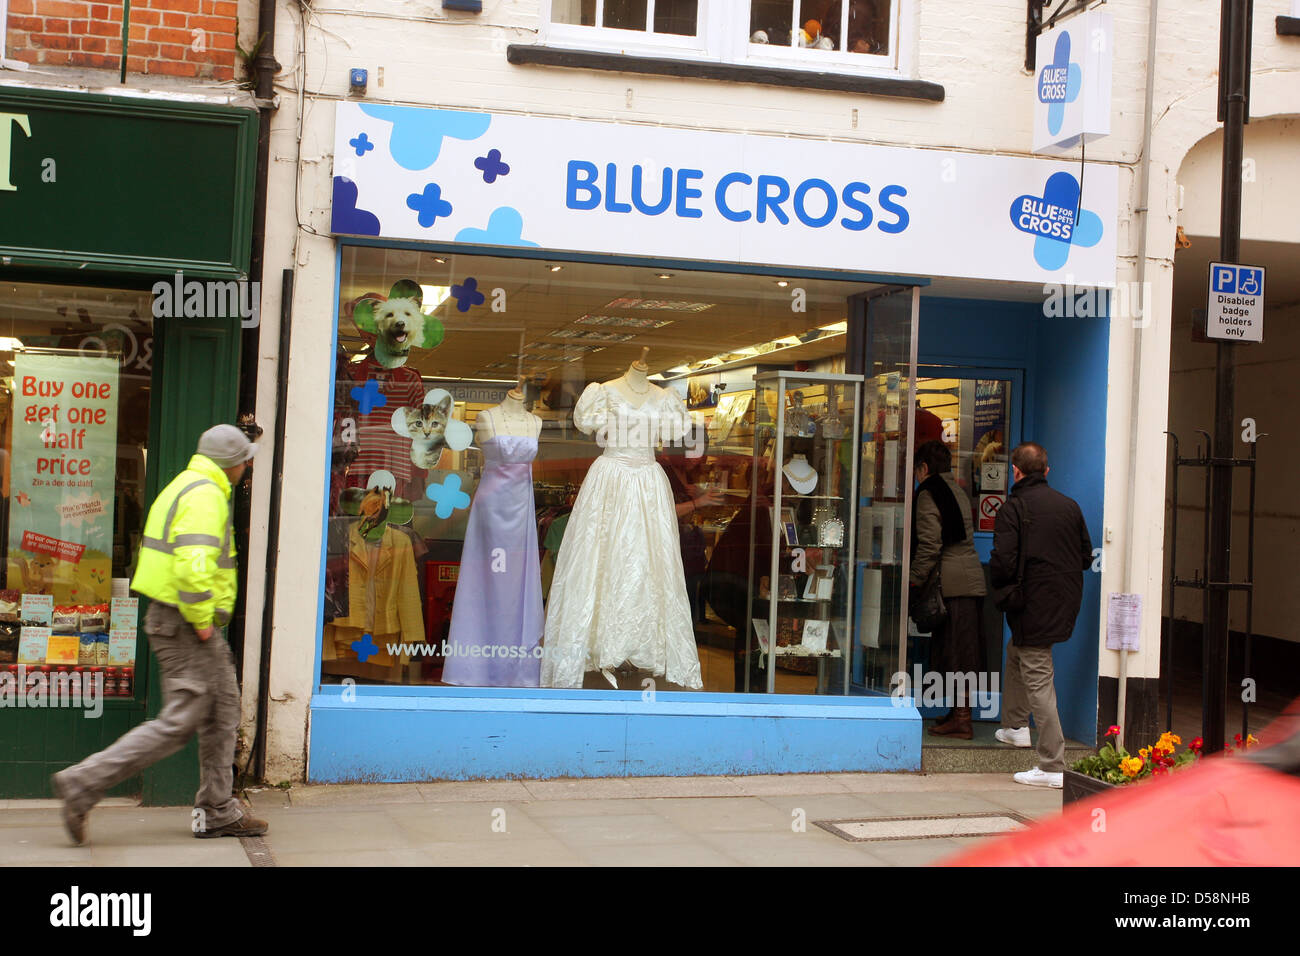 Customers entering the Blue cross animal charity shop on the high street in Wells, Somerset, March 2013 - Stock Image